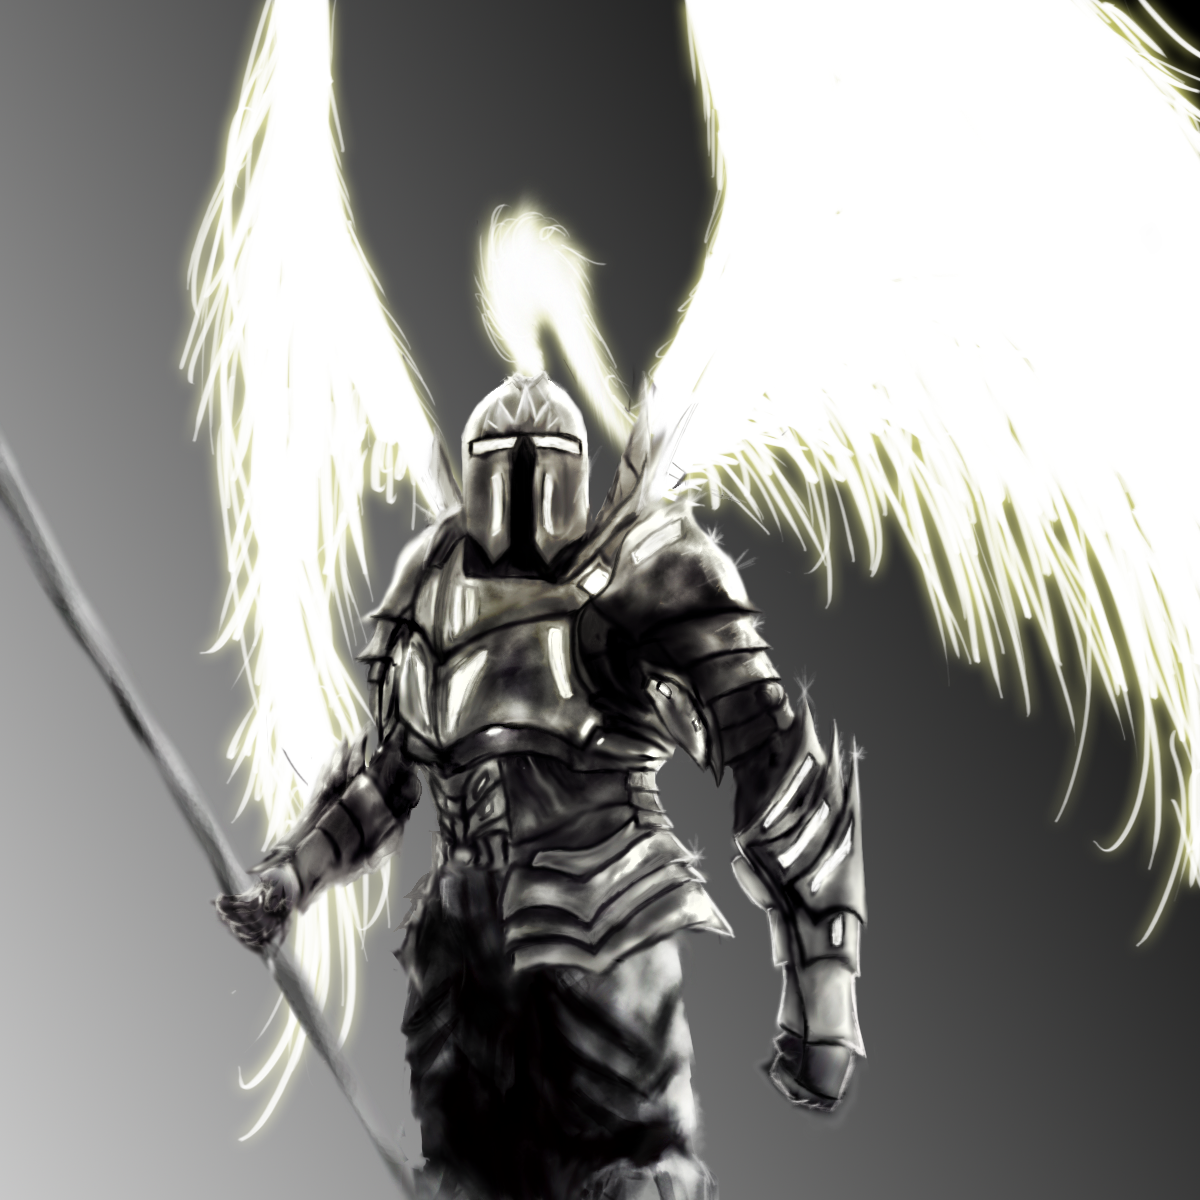 249016_apostatejt_angel-knight.png